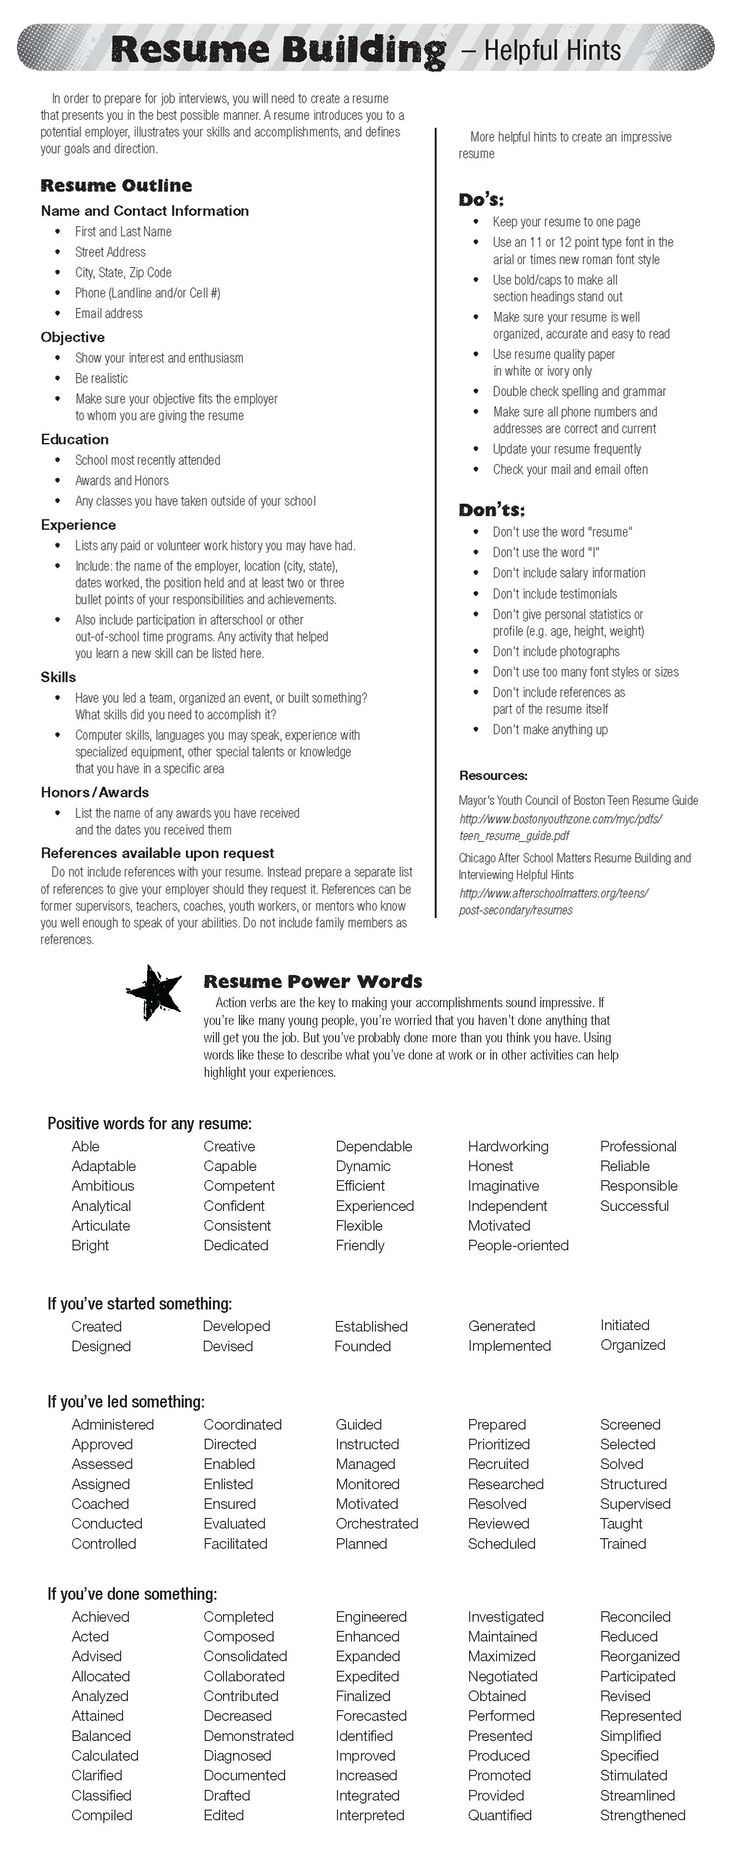 Picnictoimpeachus  Picturesque  Ideas About Resume On Pinterest  Cv Format Resume Cv And  With Interesting  Ideas About Resume On Pinterest  Cv Format Resume Cv And Resume Templates With Awesome Pl Sql Resume Also Free Resume Templates For Google Docs In Addition Graduate Assistant Resume And Sample Of Resume For Job Application As Well As Finance Internship Resume Additionally Administrative Assistant Duties For Resume From Pinterestcom With Picnictoimpeachus  Interesting  Ideas About Resume On Pinterest  Cv Format Resume Cv And  With Awesome  Ideas About Resume On Pinterest  Cv Format Resume Cv And Resume Templates And Picturesque Pl Sql Resume Also Free Resume Templates For Google Docs In Addition Graduate Assistant Resume From Pinterestcom